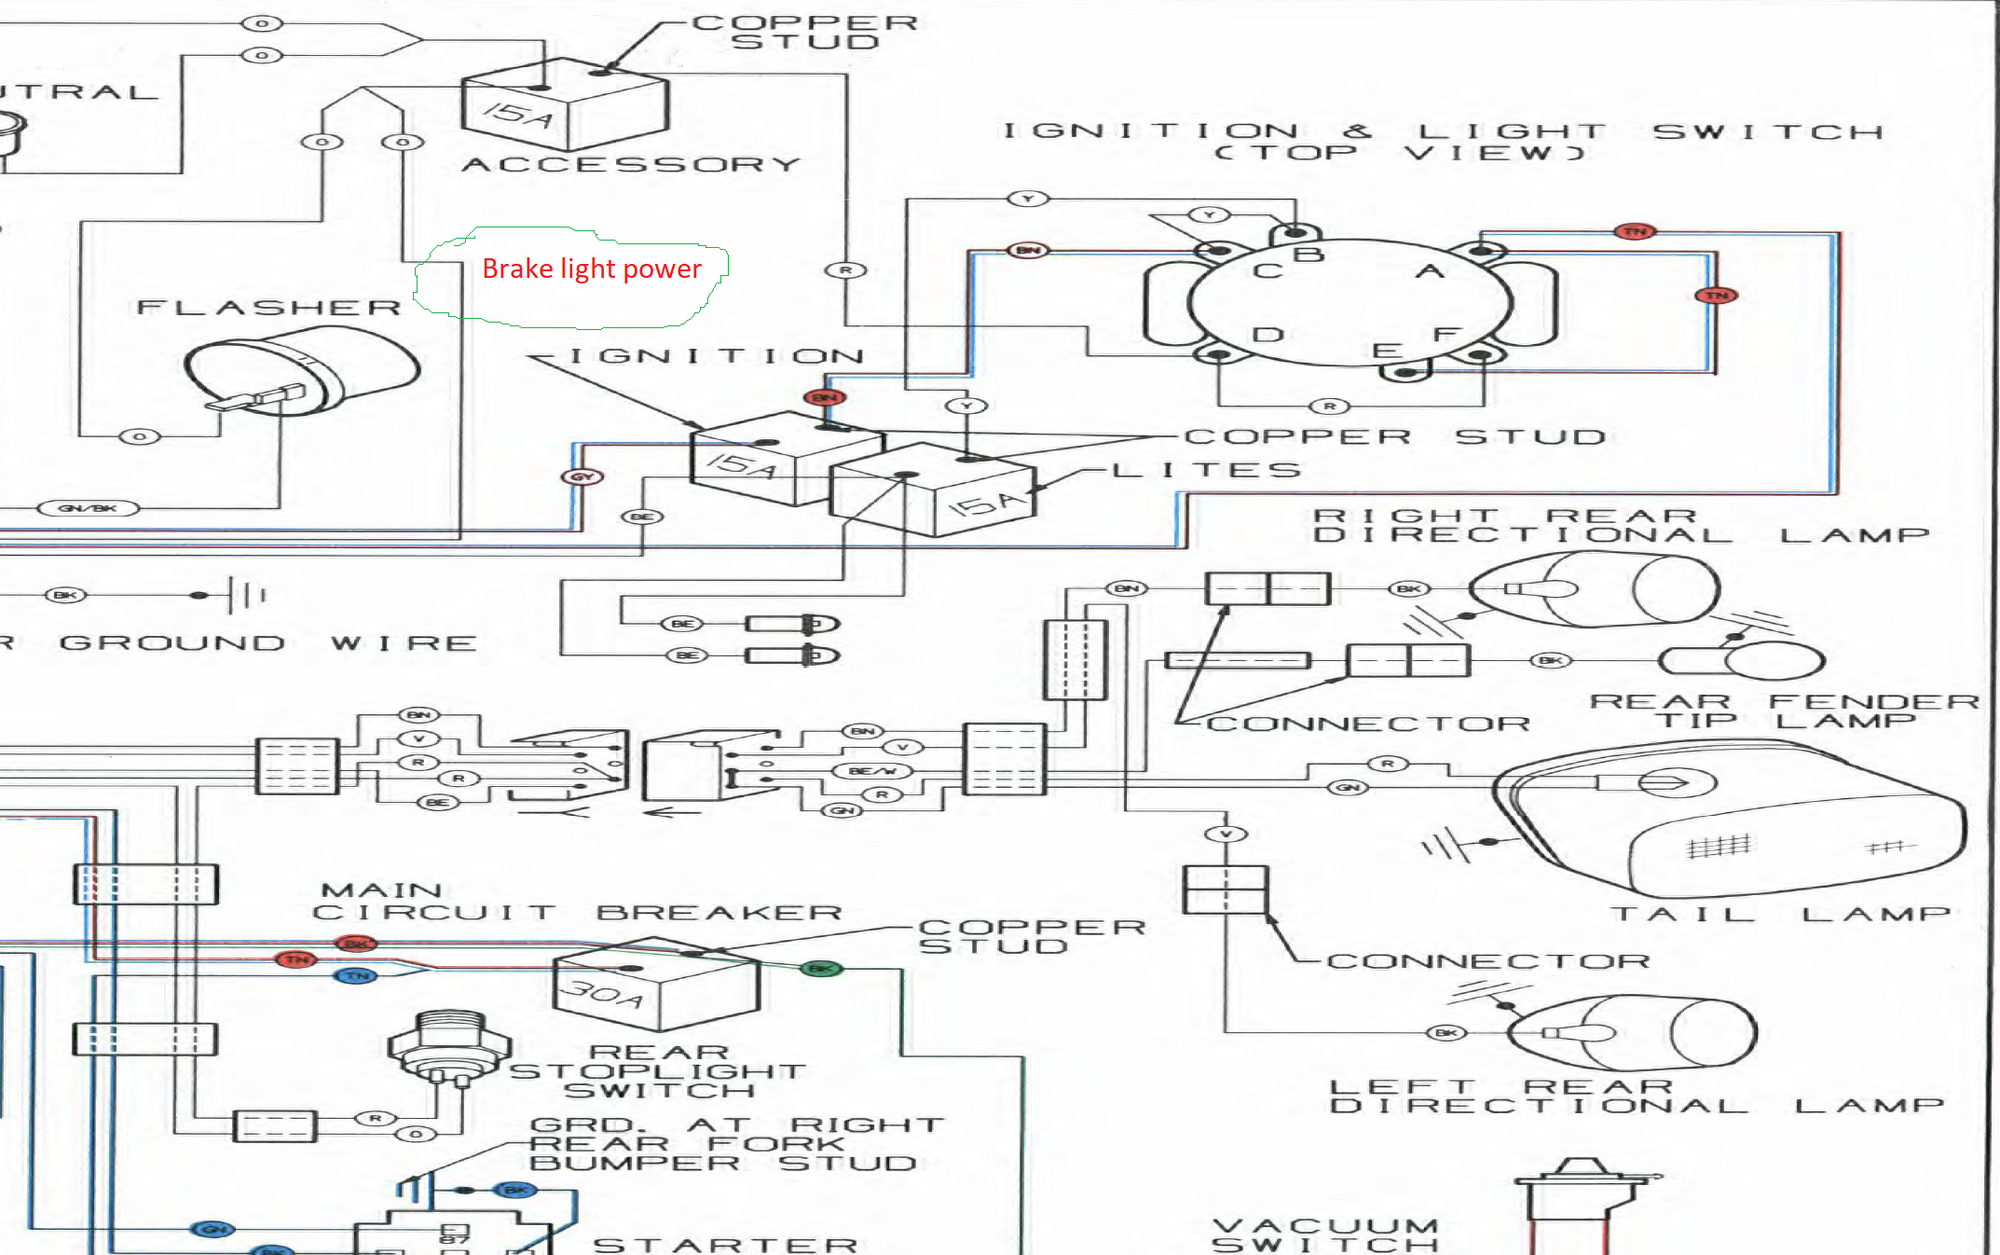 1999 softail wiring diagram 1990 softail wiring diagram wiring diagrams dat  1990 softail wiring diagram wiring